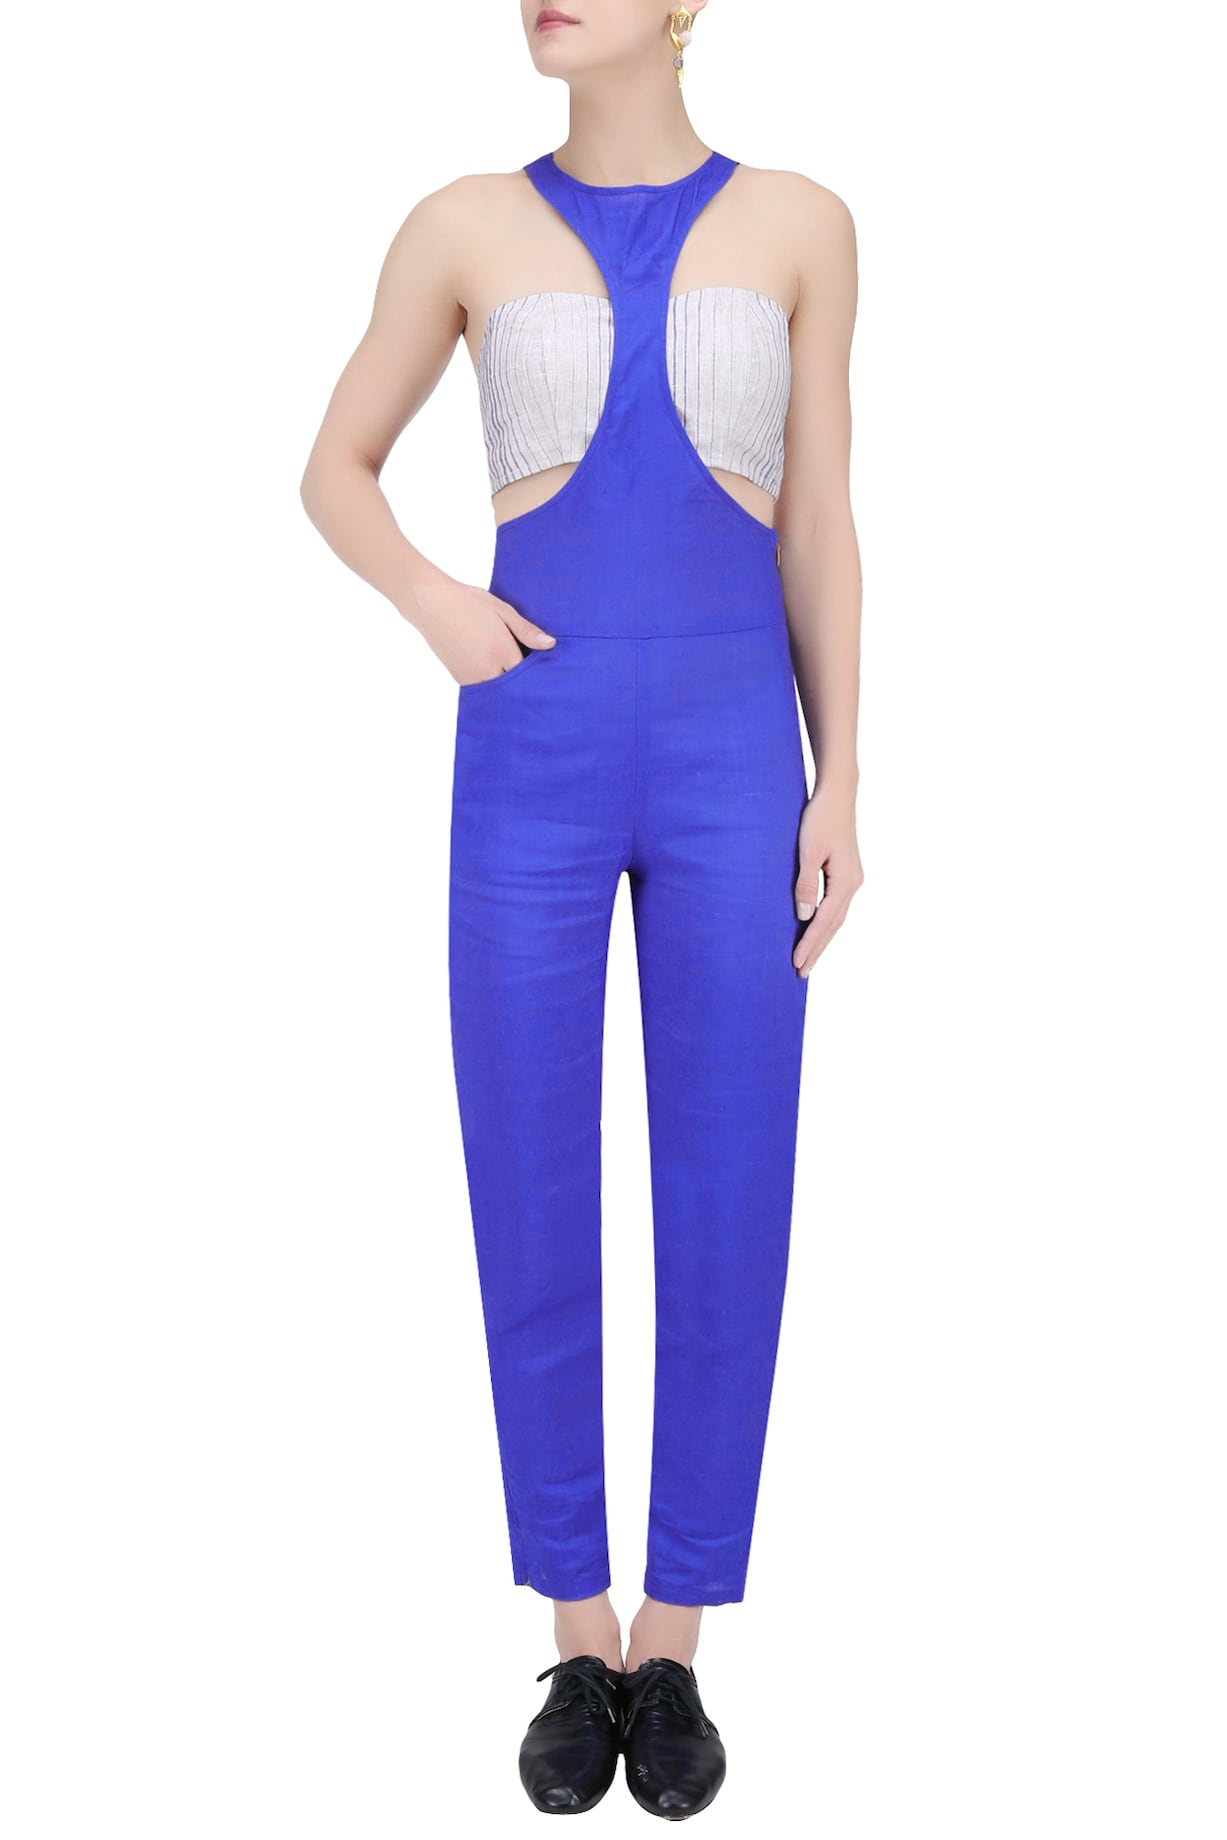 House of Sohn Jump Suits